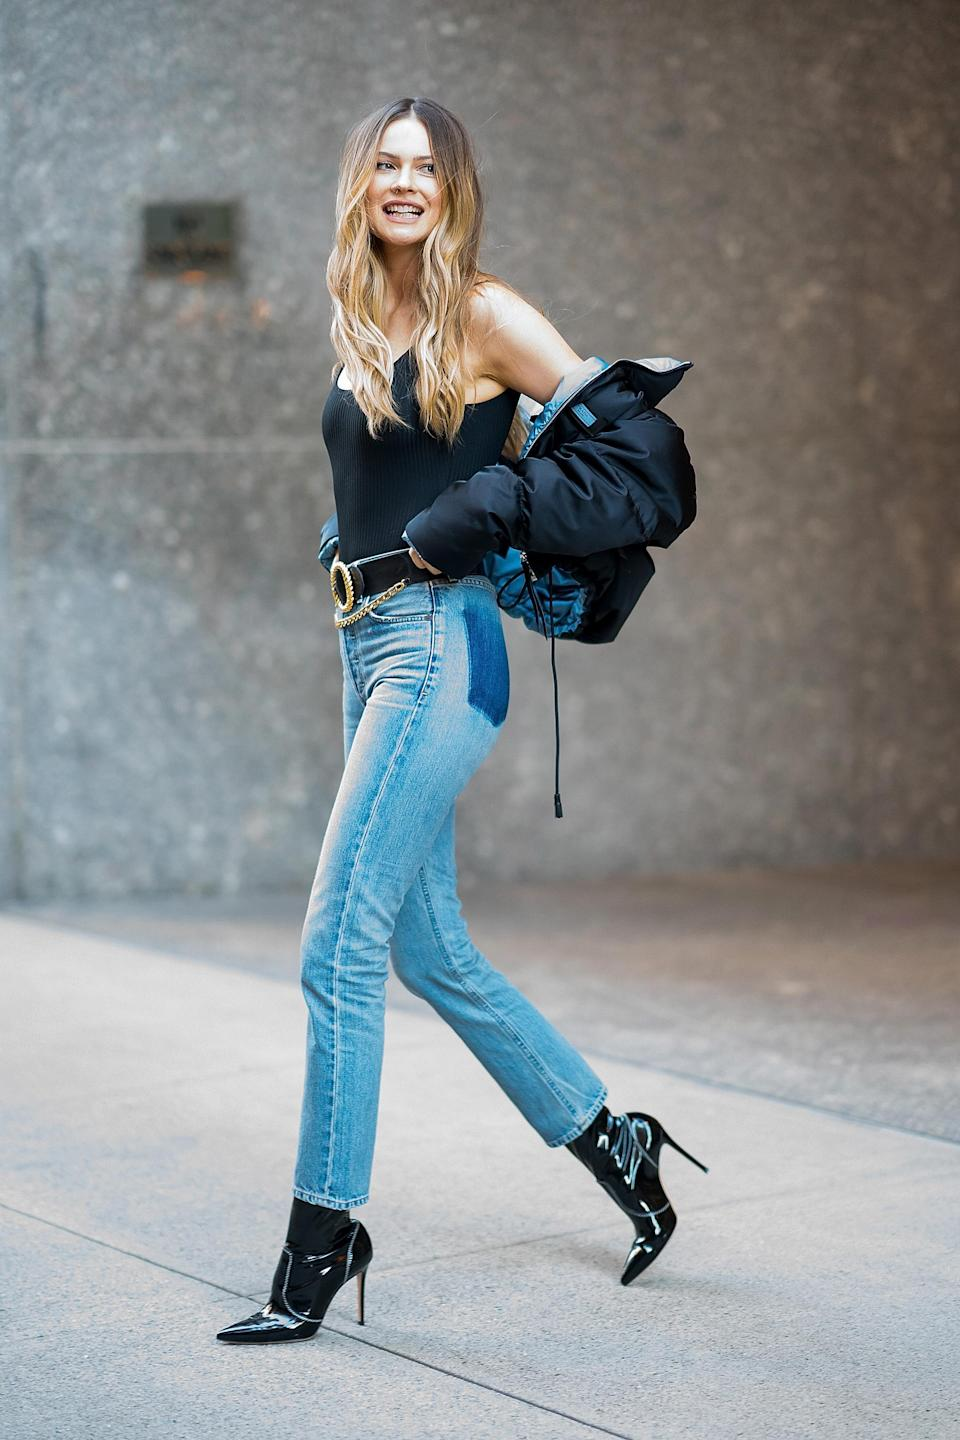 """<p>Behati Prinsloo attended the Victoria's Secret fittings in a seriously covetable pair of <a href=""""https://www.citizensofhumanity.com/womens/all-womens/straight/charlotte-high-rise-straight-in-barrow"""" rel=""""nofollow noopener"""" target=""""_blank"""" data-ylk=""""slk:jeans"""" class=""""link rapid-noclick-resp"""">jeans</a> by Citizens of Humanity. The model finished the look with a body and draped puffer jacket. <em>[Photo: Getty]</em> </p>"""